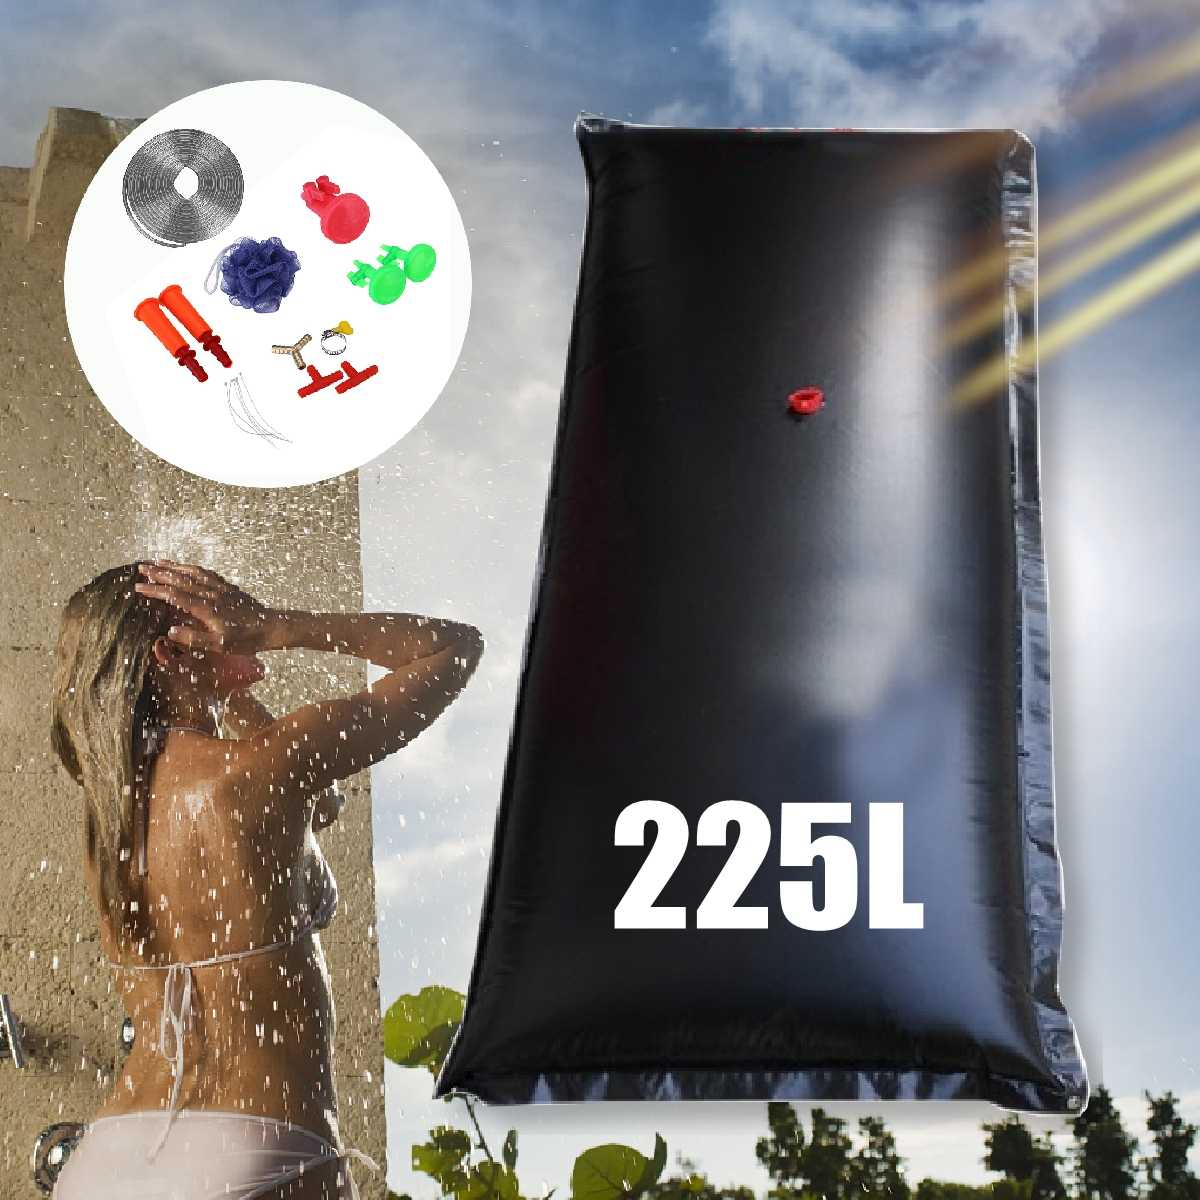 225L Portable Outdoor Camping Shower Bag Solar Heated Shower Bathing Picnic Water Bag Water Storage For Travel Hiking BBQ